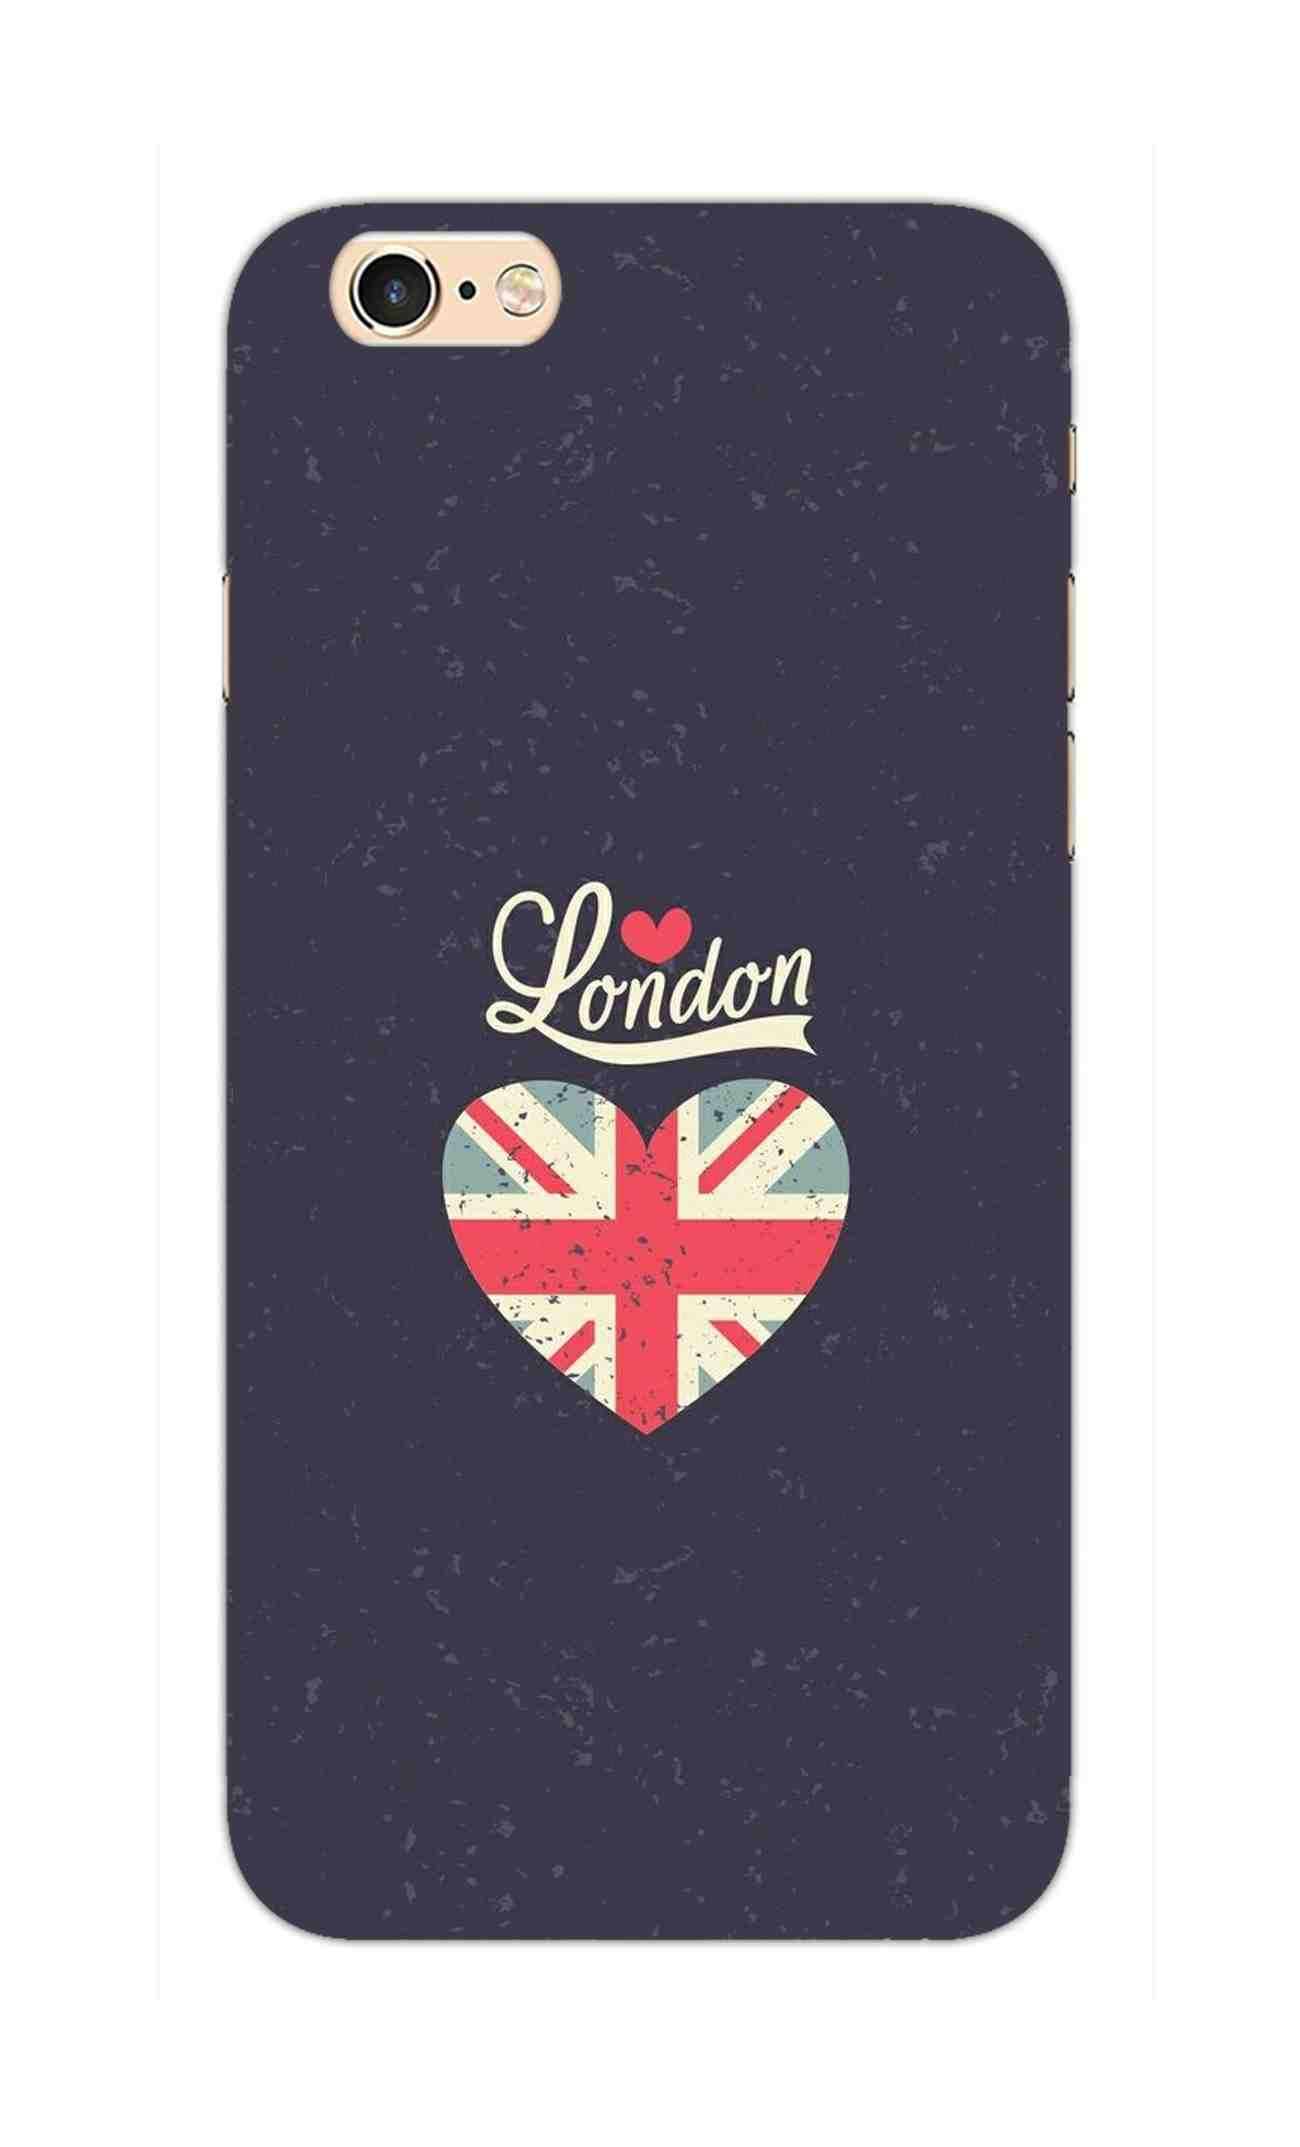 I Love London Typography Art For Artist iPhone 6S Mobile Cover Case - MADANYU